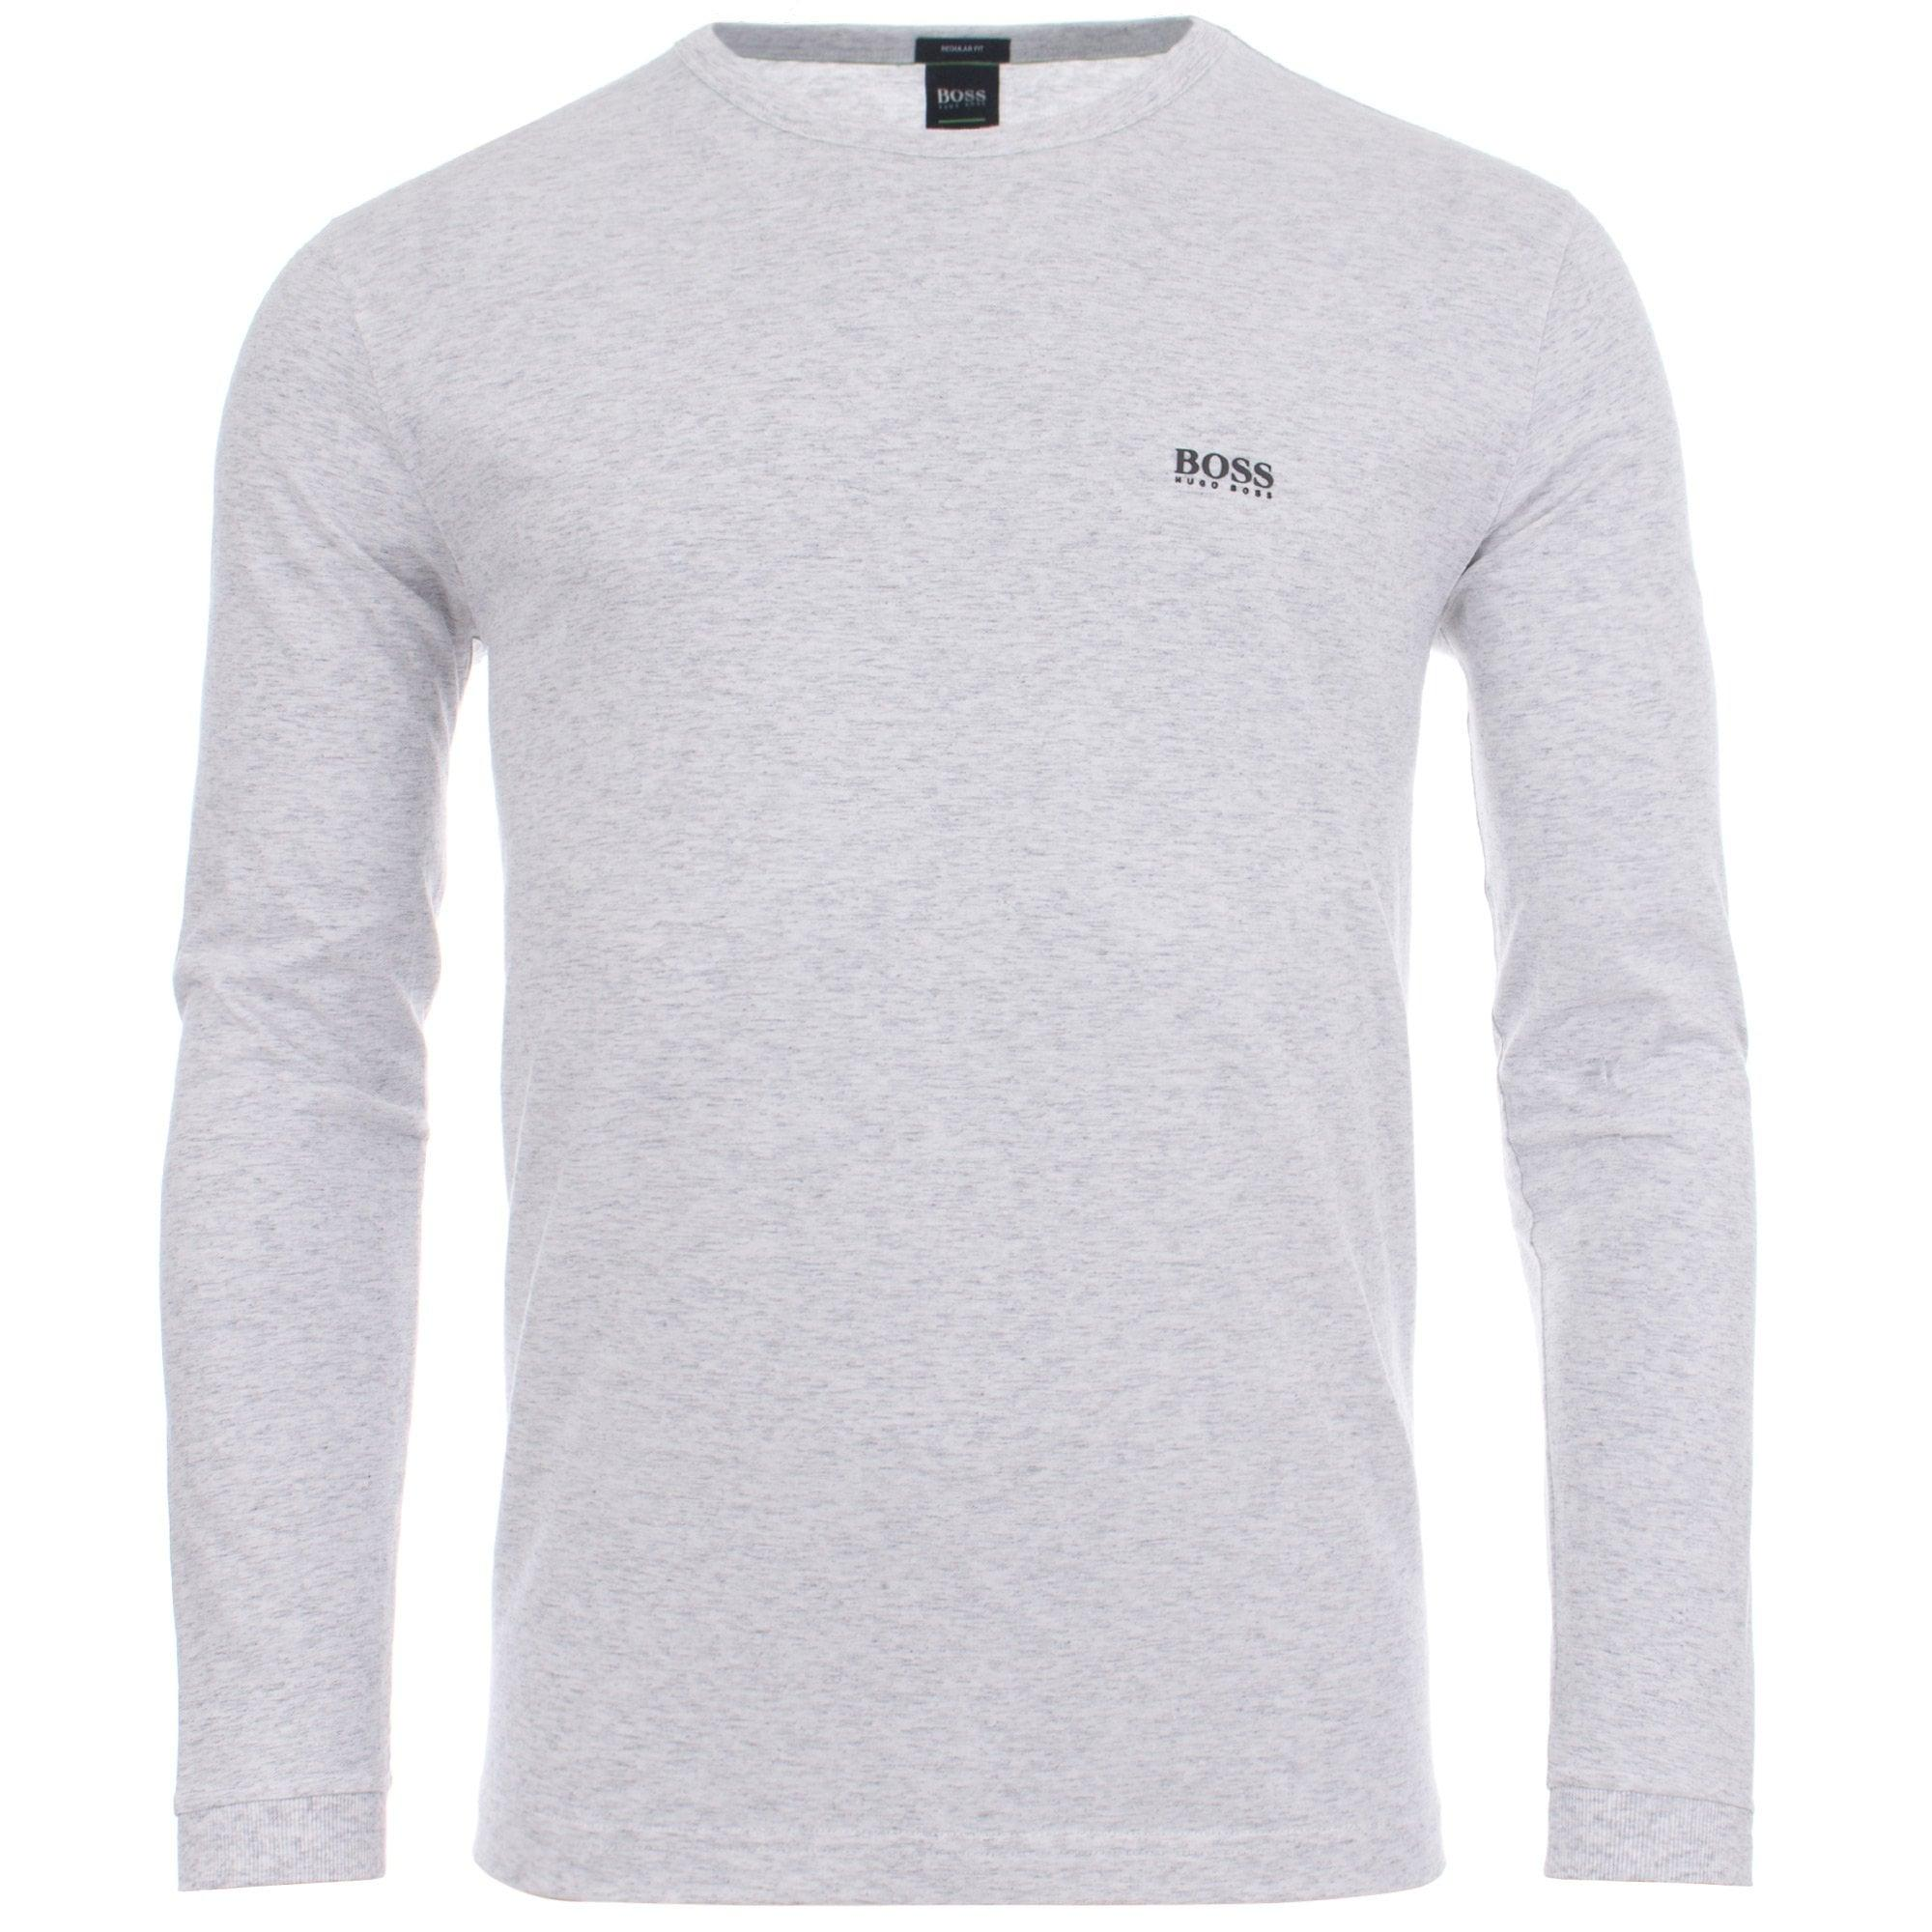 5630856b2 BOSS Athleisure Togn Rubberised Logo Long Sleeve Top in Gray for Men ...